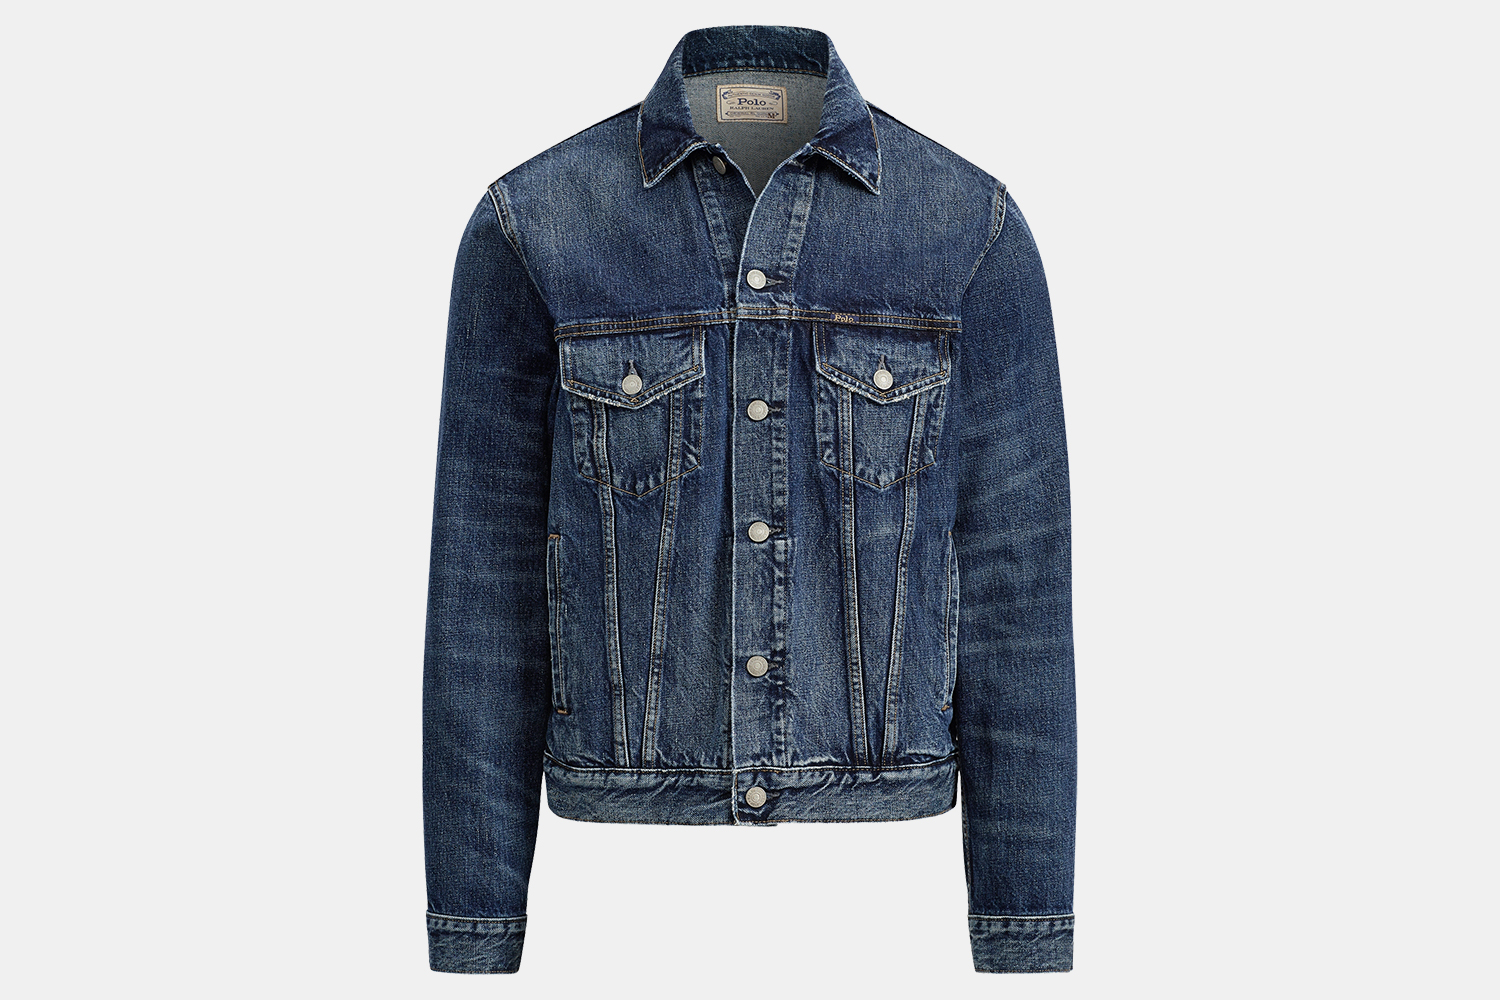 Ralph Lauren Men's Faded Denim Trucker Jacket